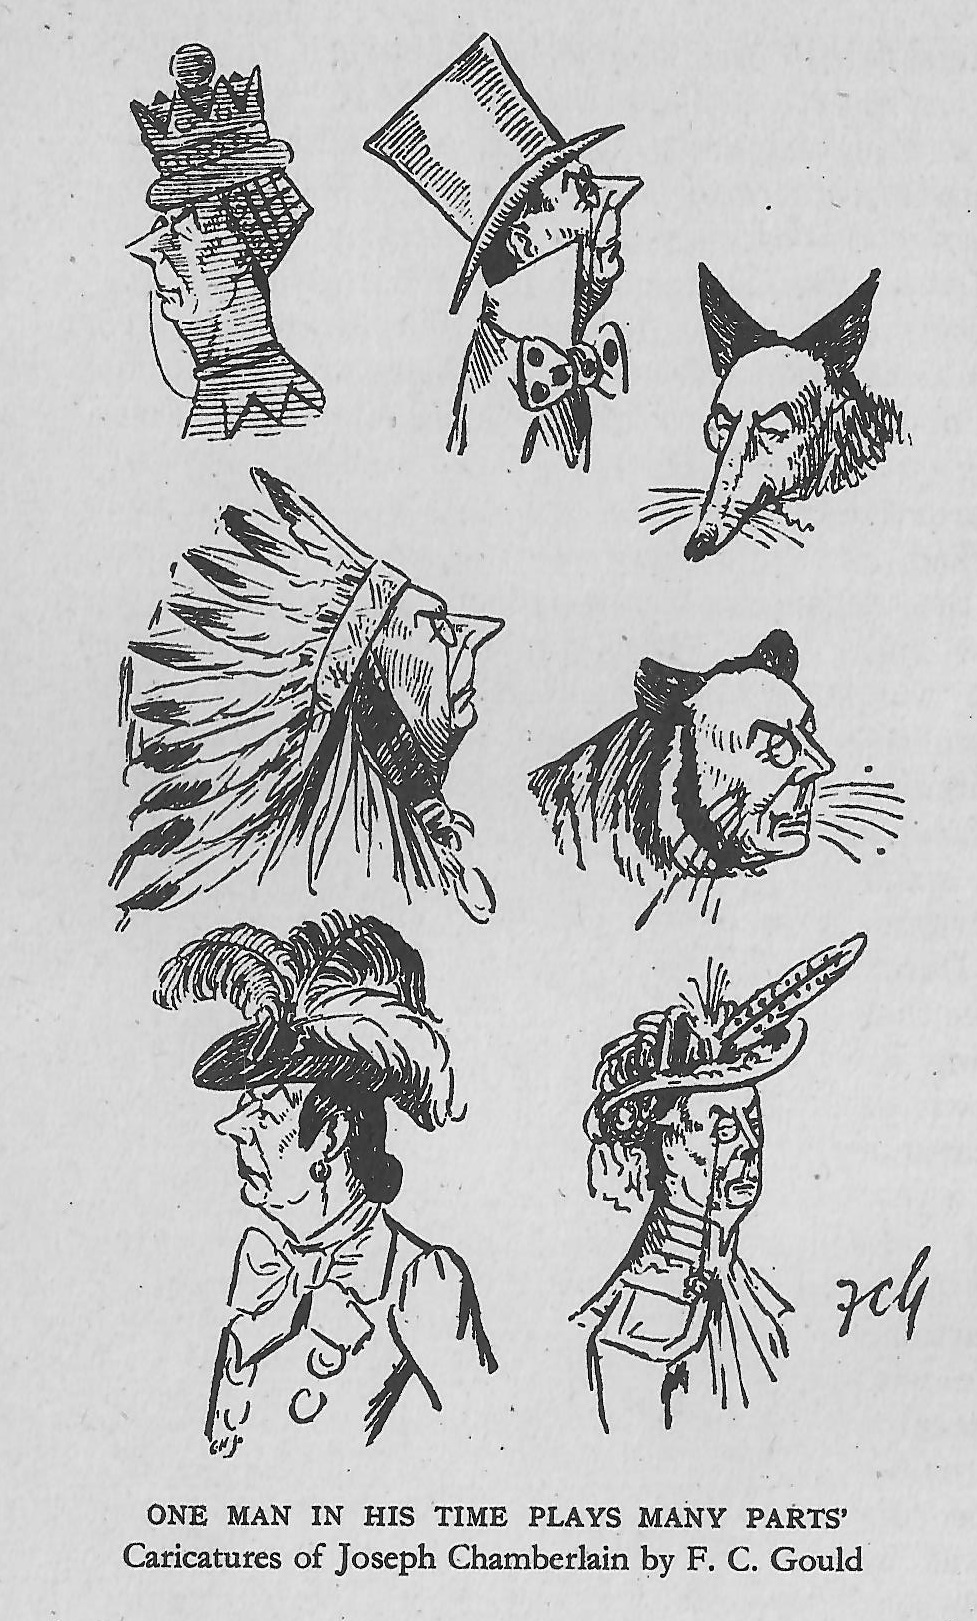 Caricatures of Joseph Chamberlain by F.C. Gould